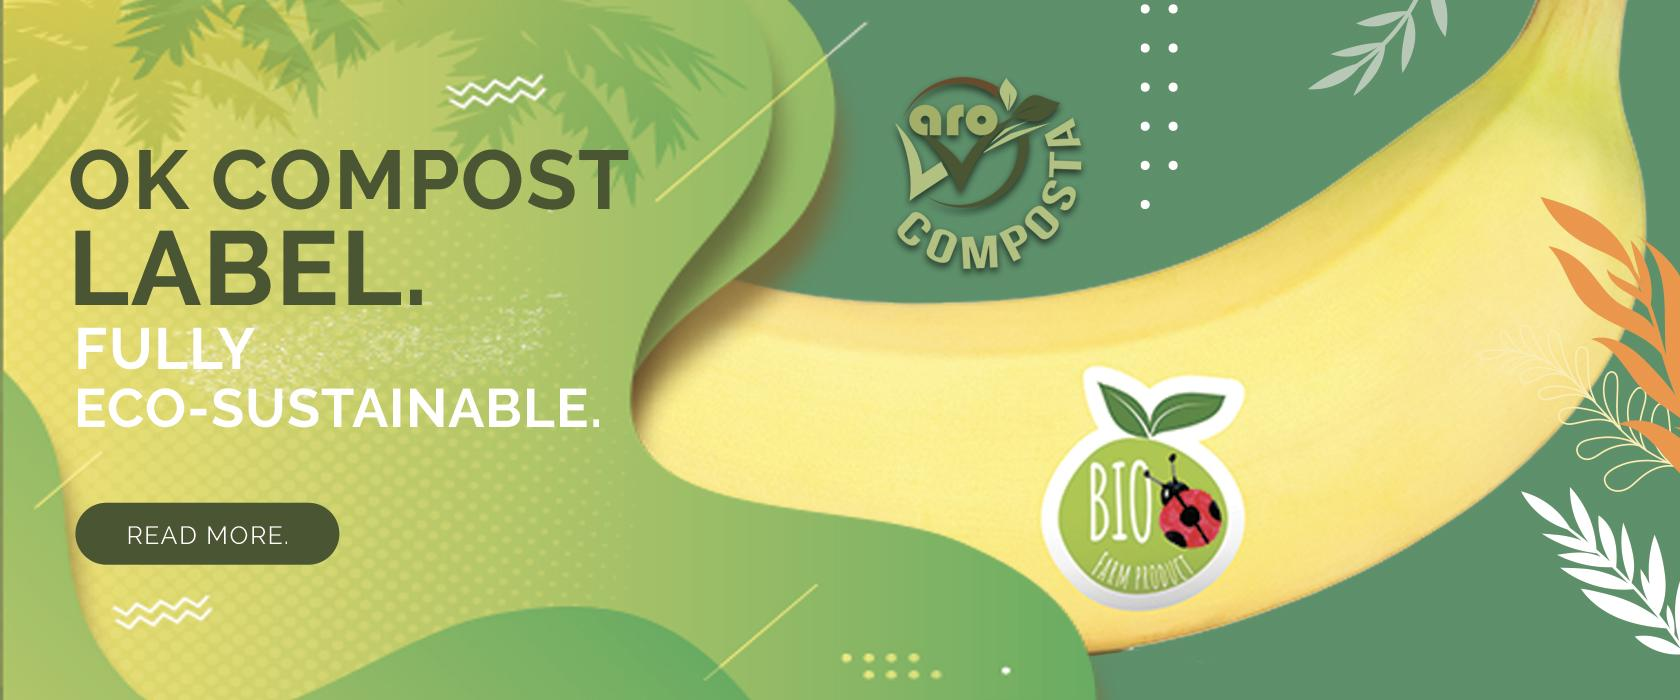 OK COMPOST LABEL FULLY ECO-SUSTAINABLE COMPOSTABLE BAGS